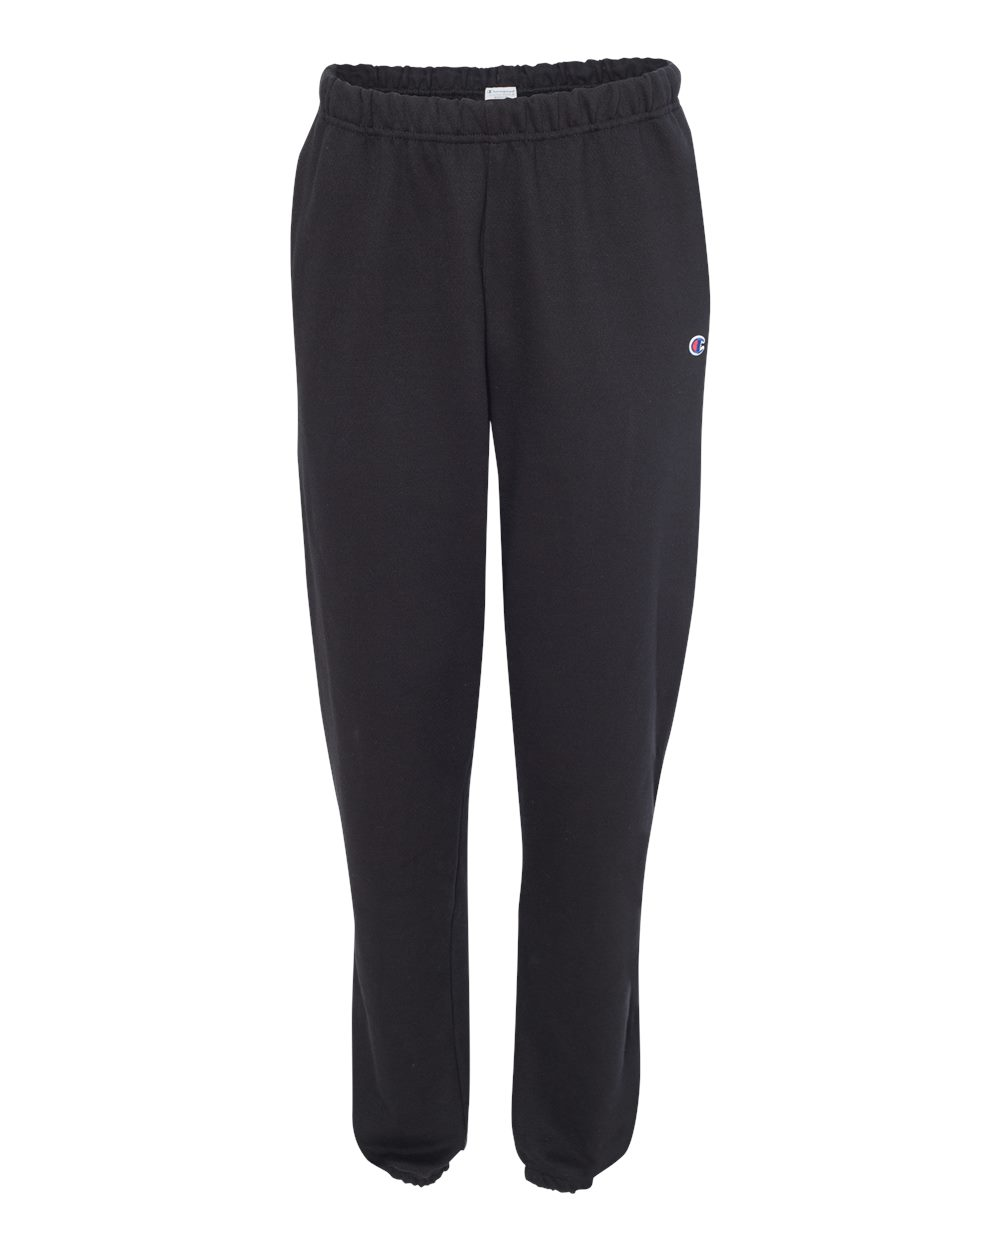 Champion-Mens-Reverse-Weave-Sweatpants-with-Pockets-RW10-up-to-3XL thumbnail 6